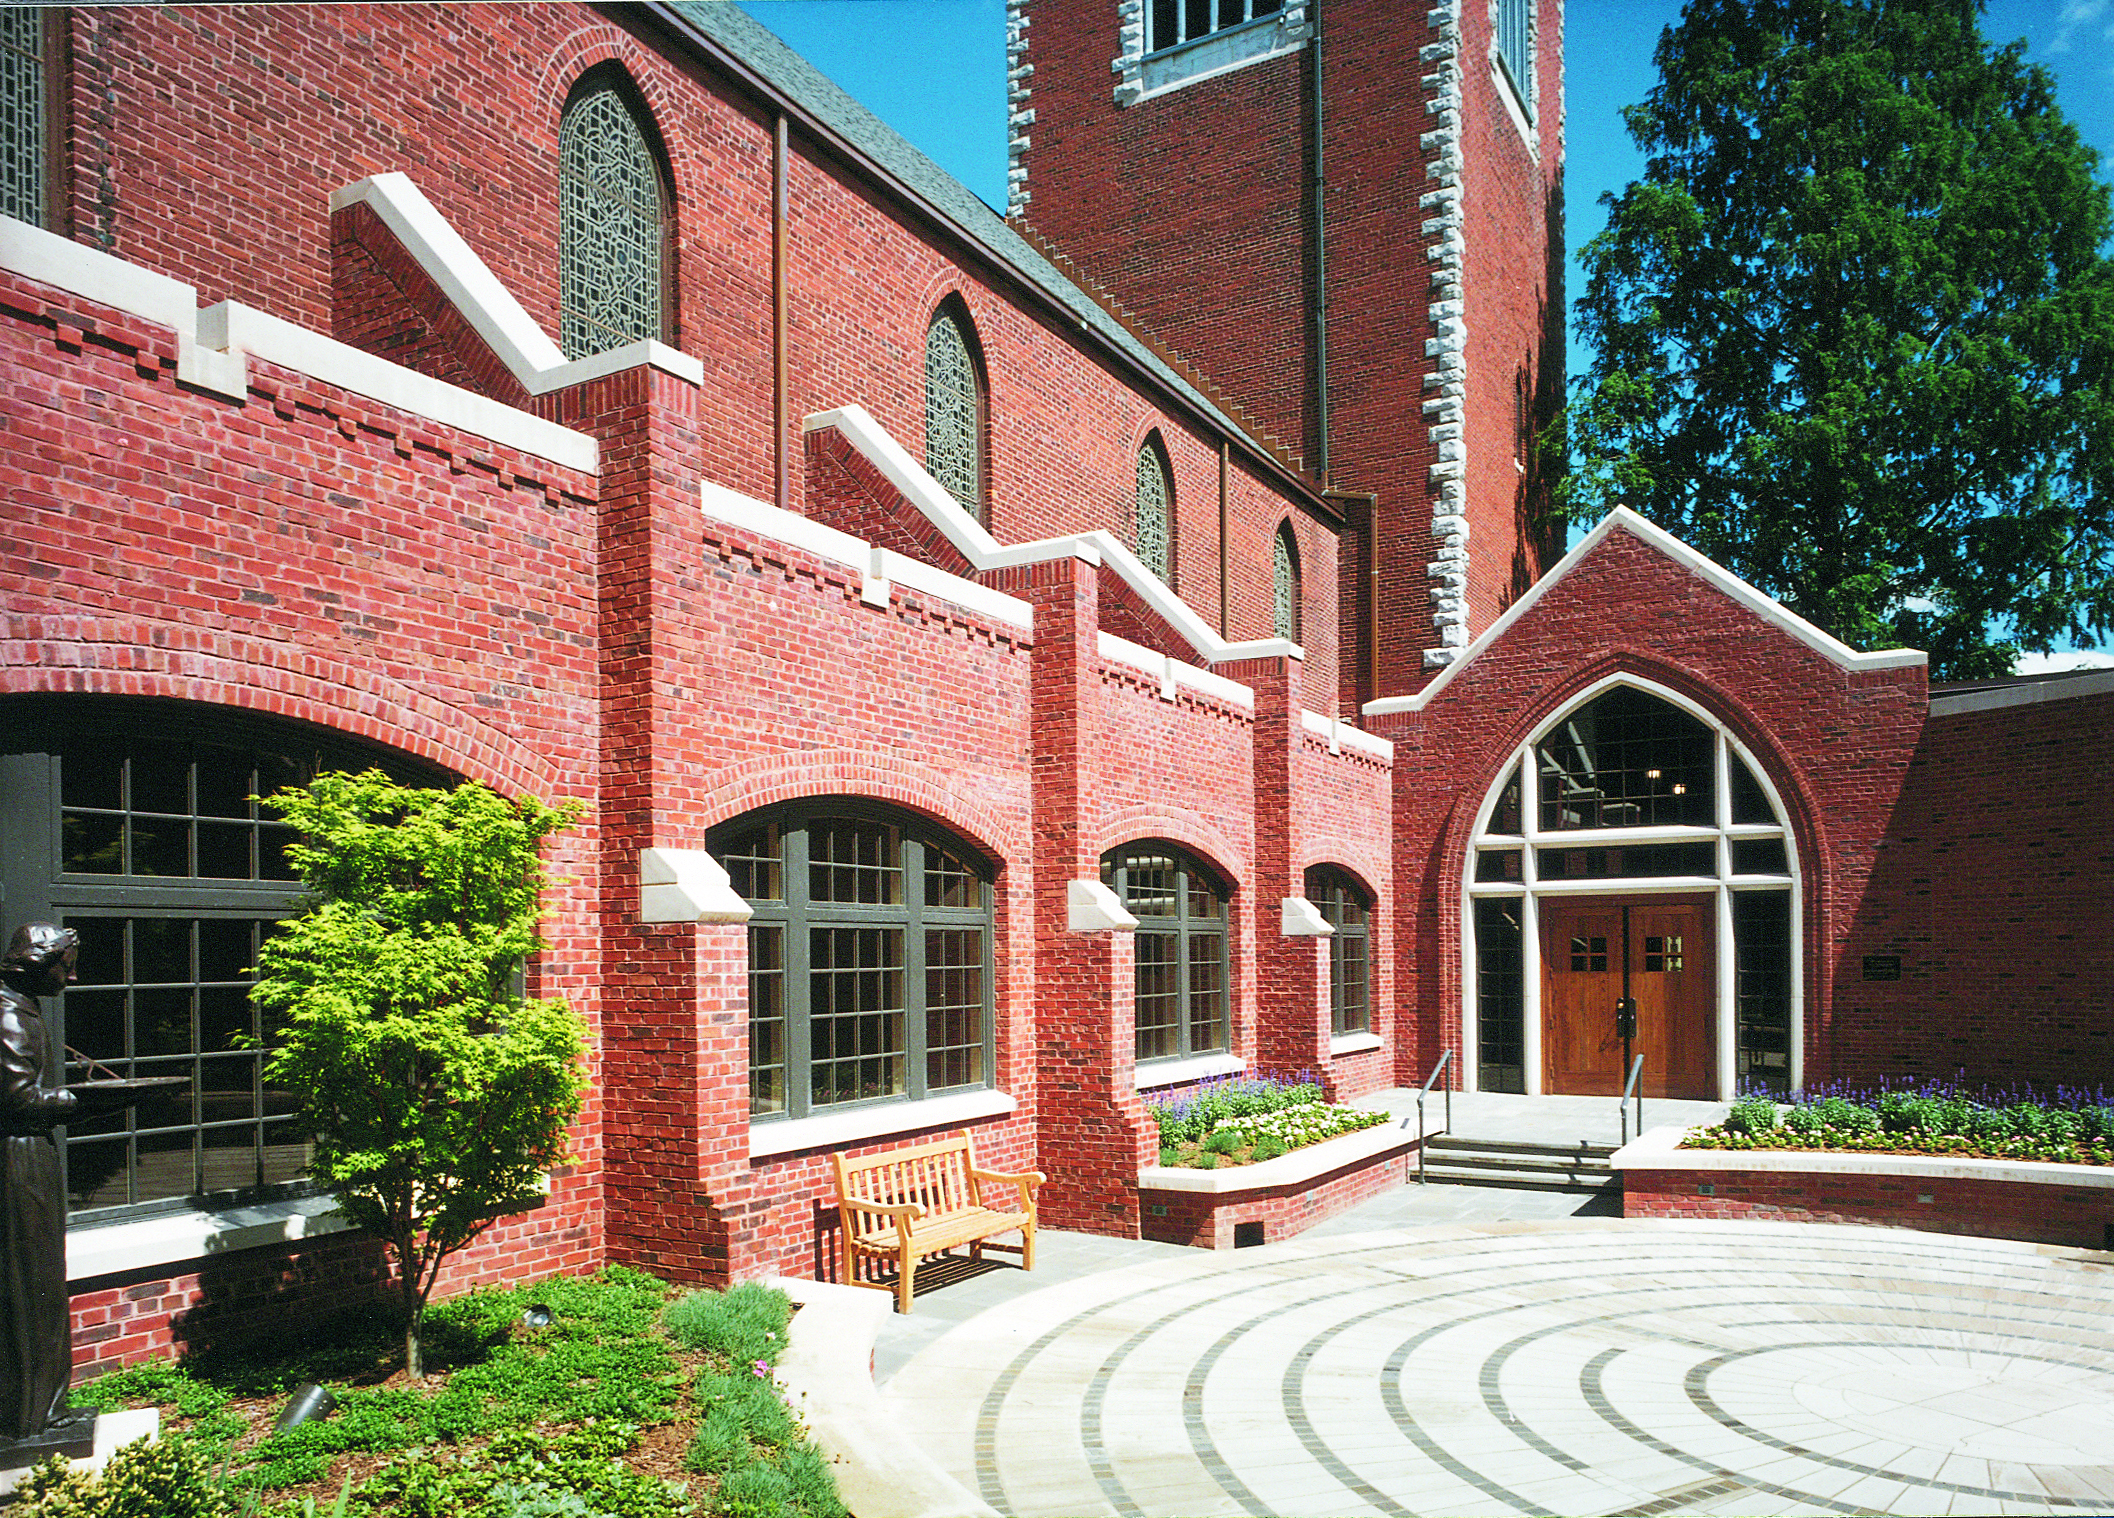 """St Paul's Episcopal Church   We designed this traditional masonry addition to this downtown Church, to provide new offices, Sunday school classrooms, and address the importance of the """"everday"""" building entrance. The new program spaces are organized around an interior courtyard which provides overflow capacity to the narthex and buidling code separation to the National Historic Registered Church. The buidling received an Excellence in Masonry from the Tennessee Masonry Institute in 2001."""